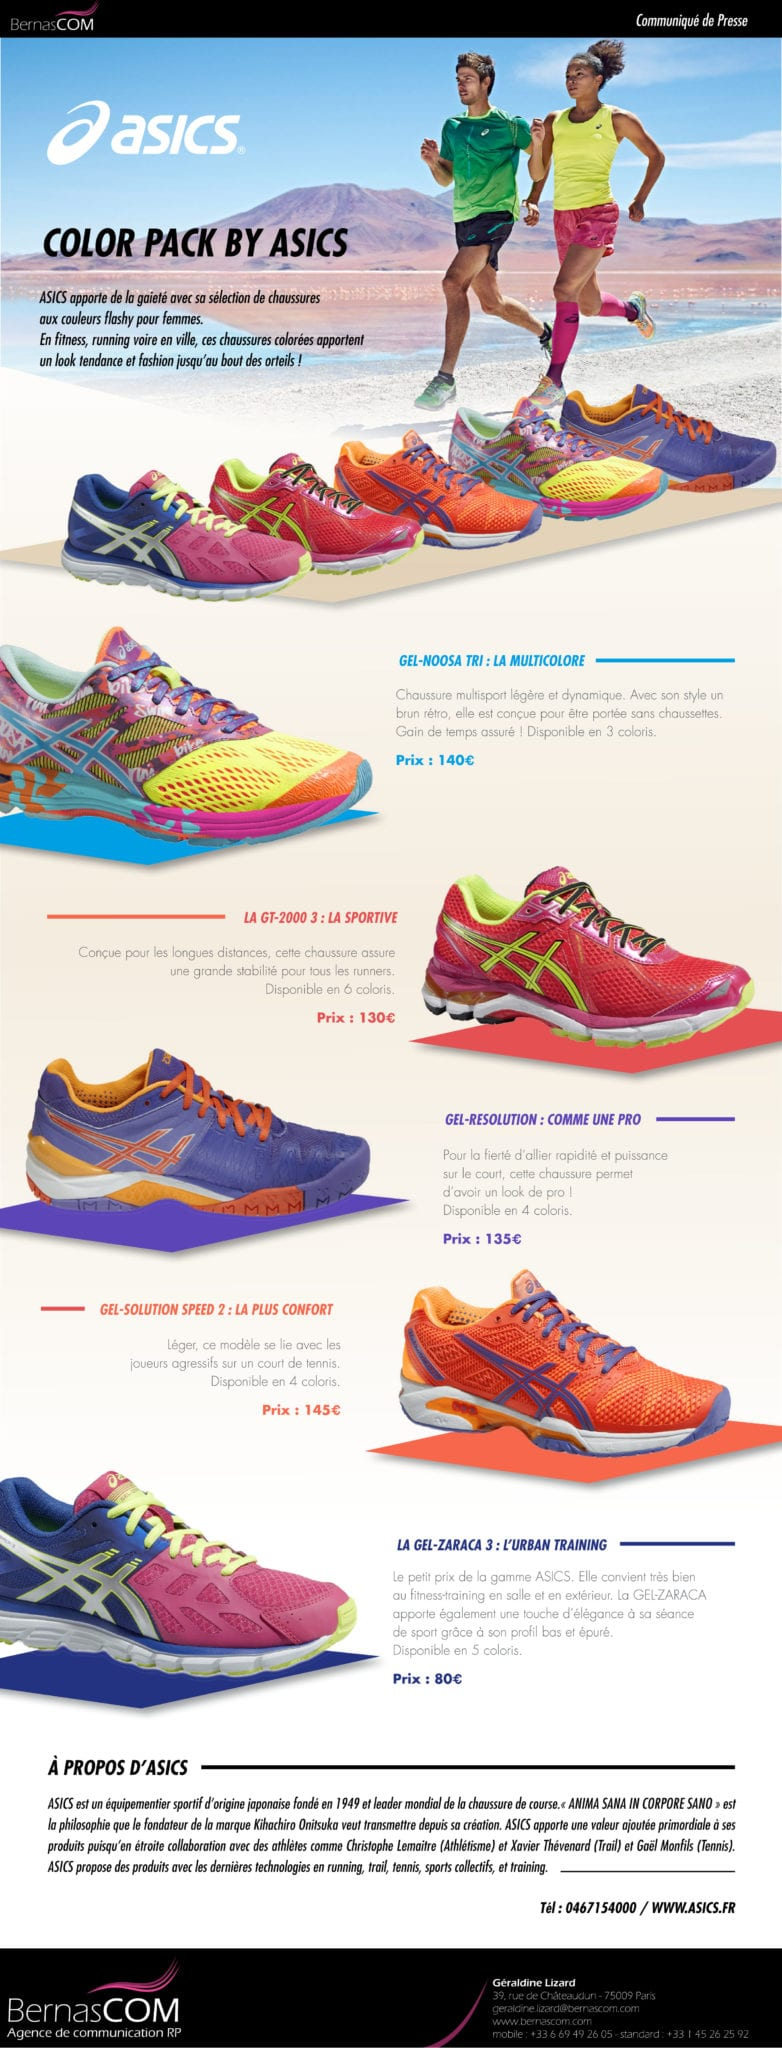 ASICS-CP_COLOR-PACK